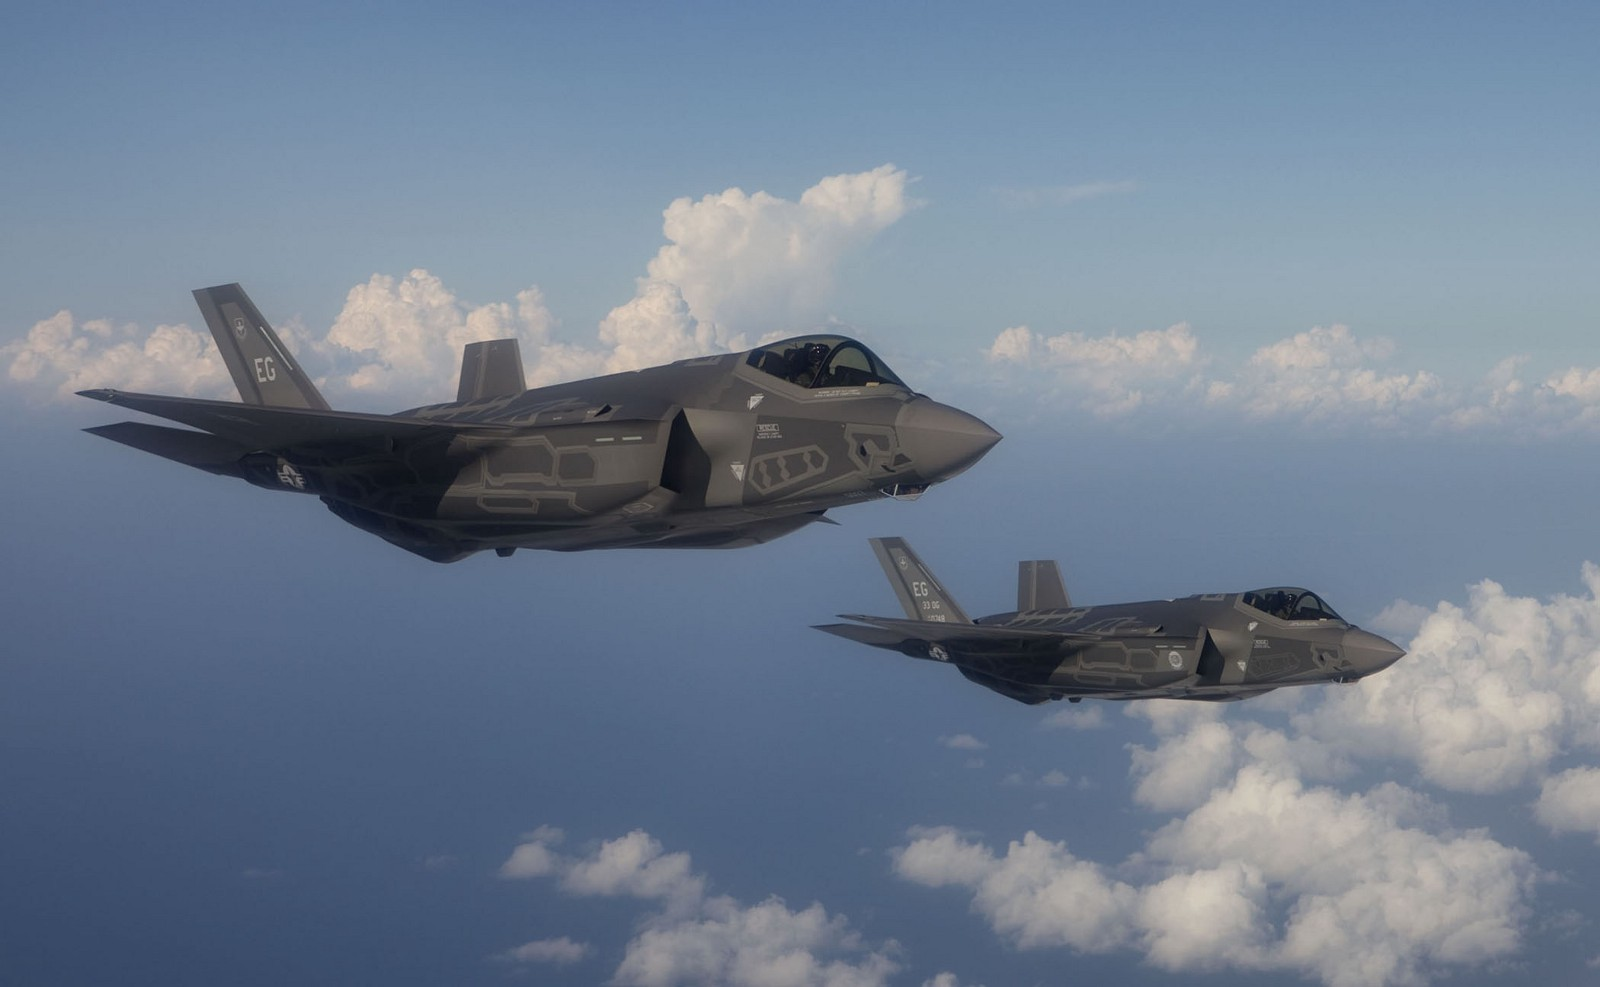 Two of the Air Force's up-coming F-35 stealth fighters. Air Force photo